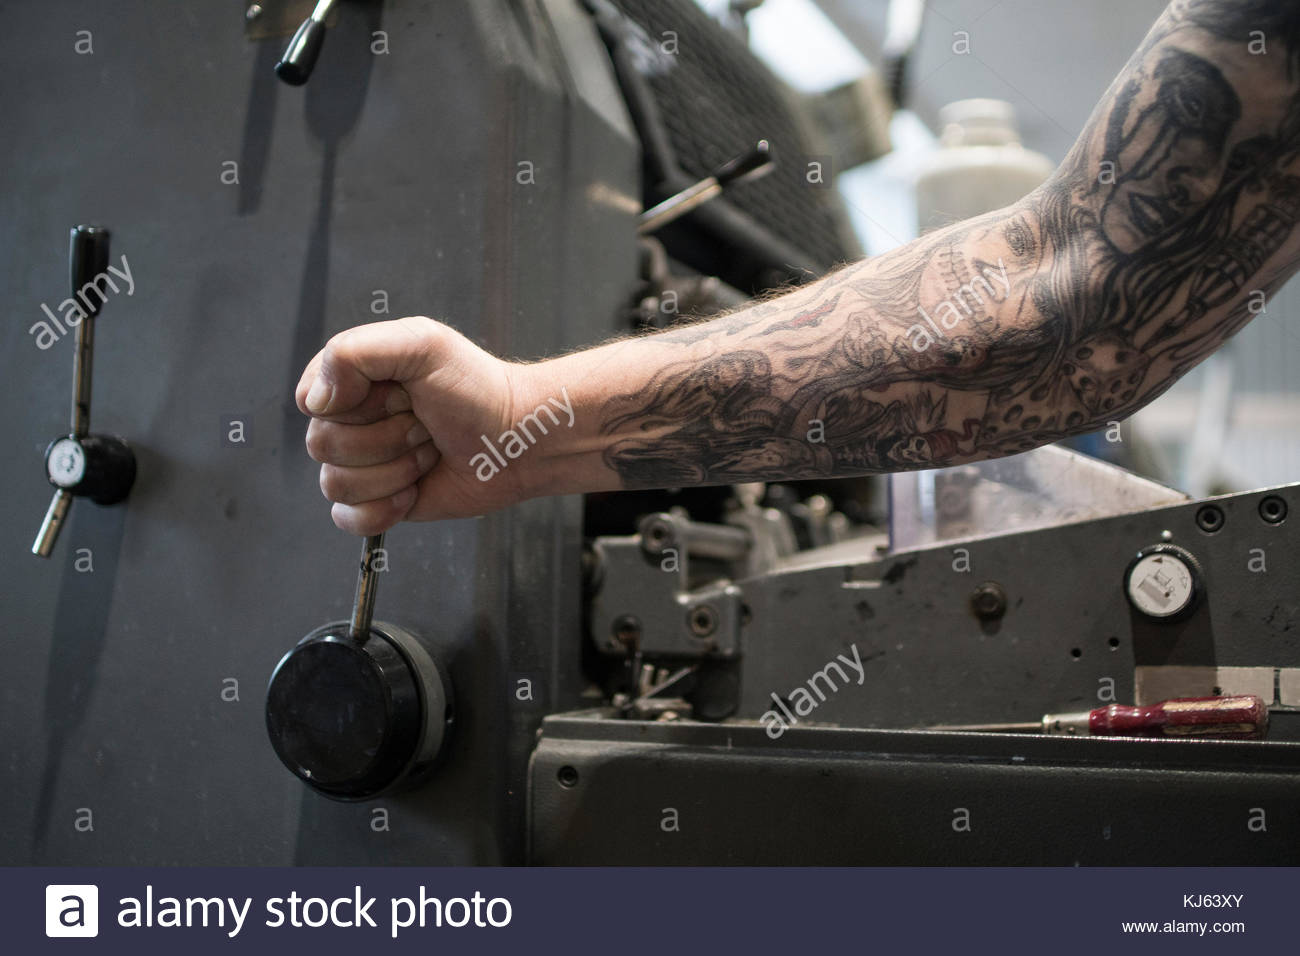 Strong tattooed arm pulling a lever - Stock Image